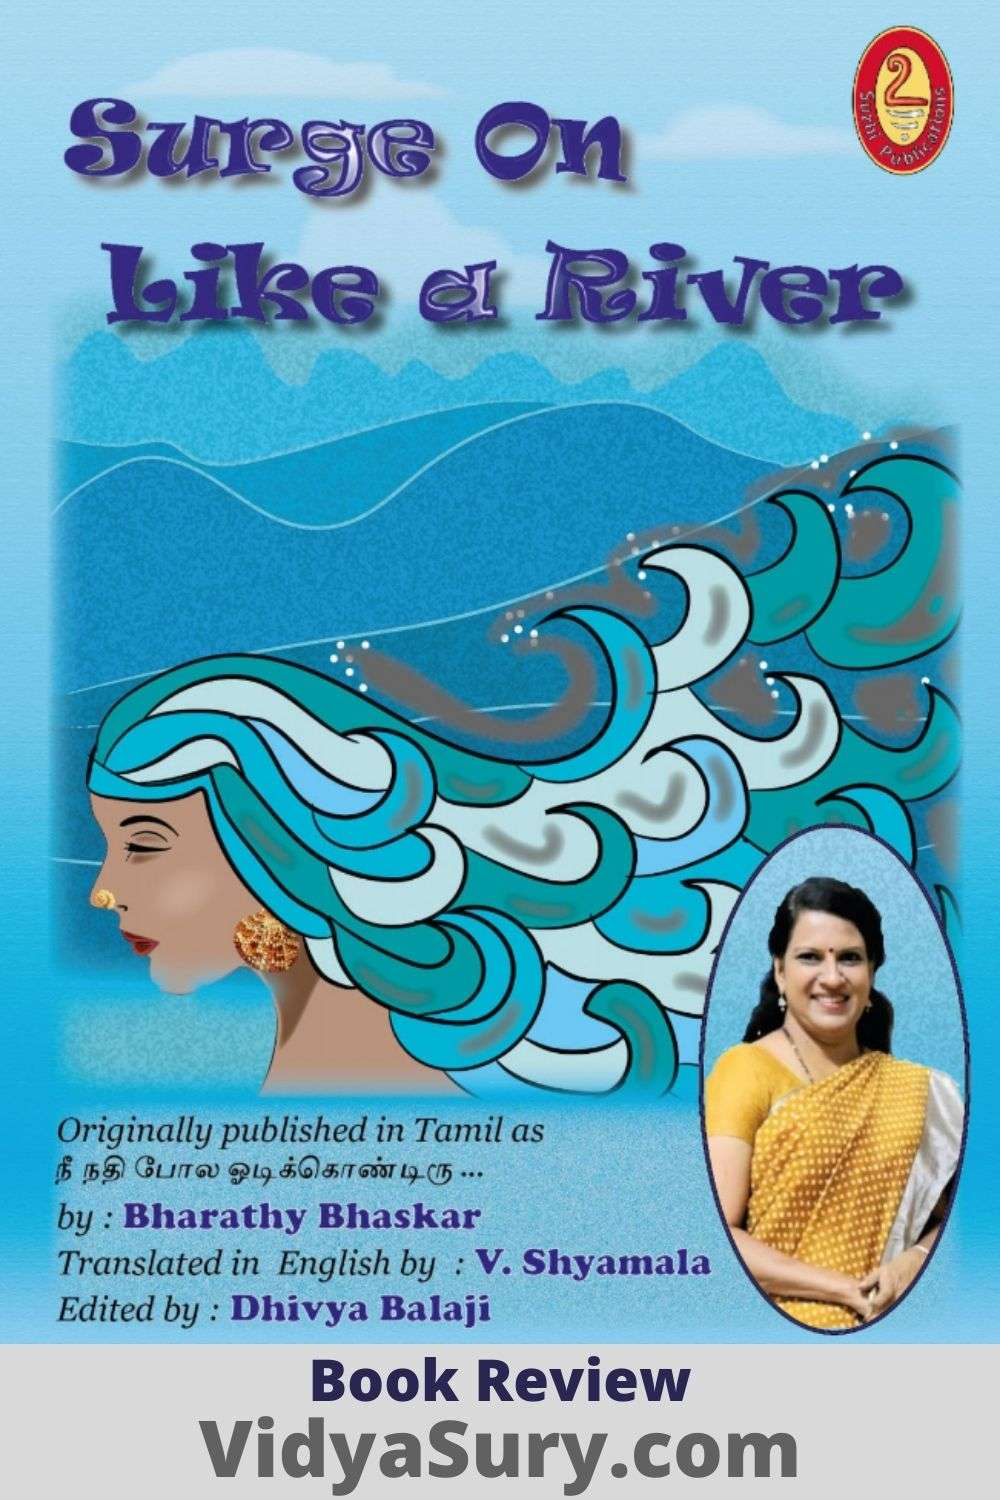 Book Review of Surge On Like a River